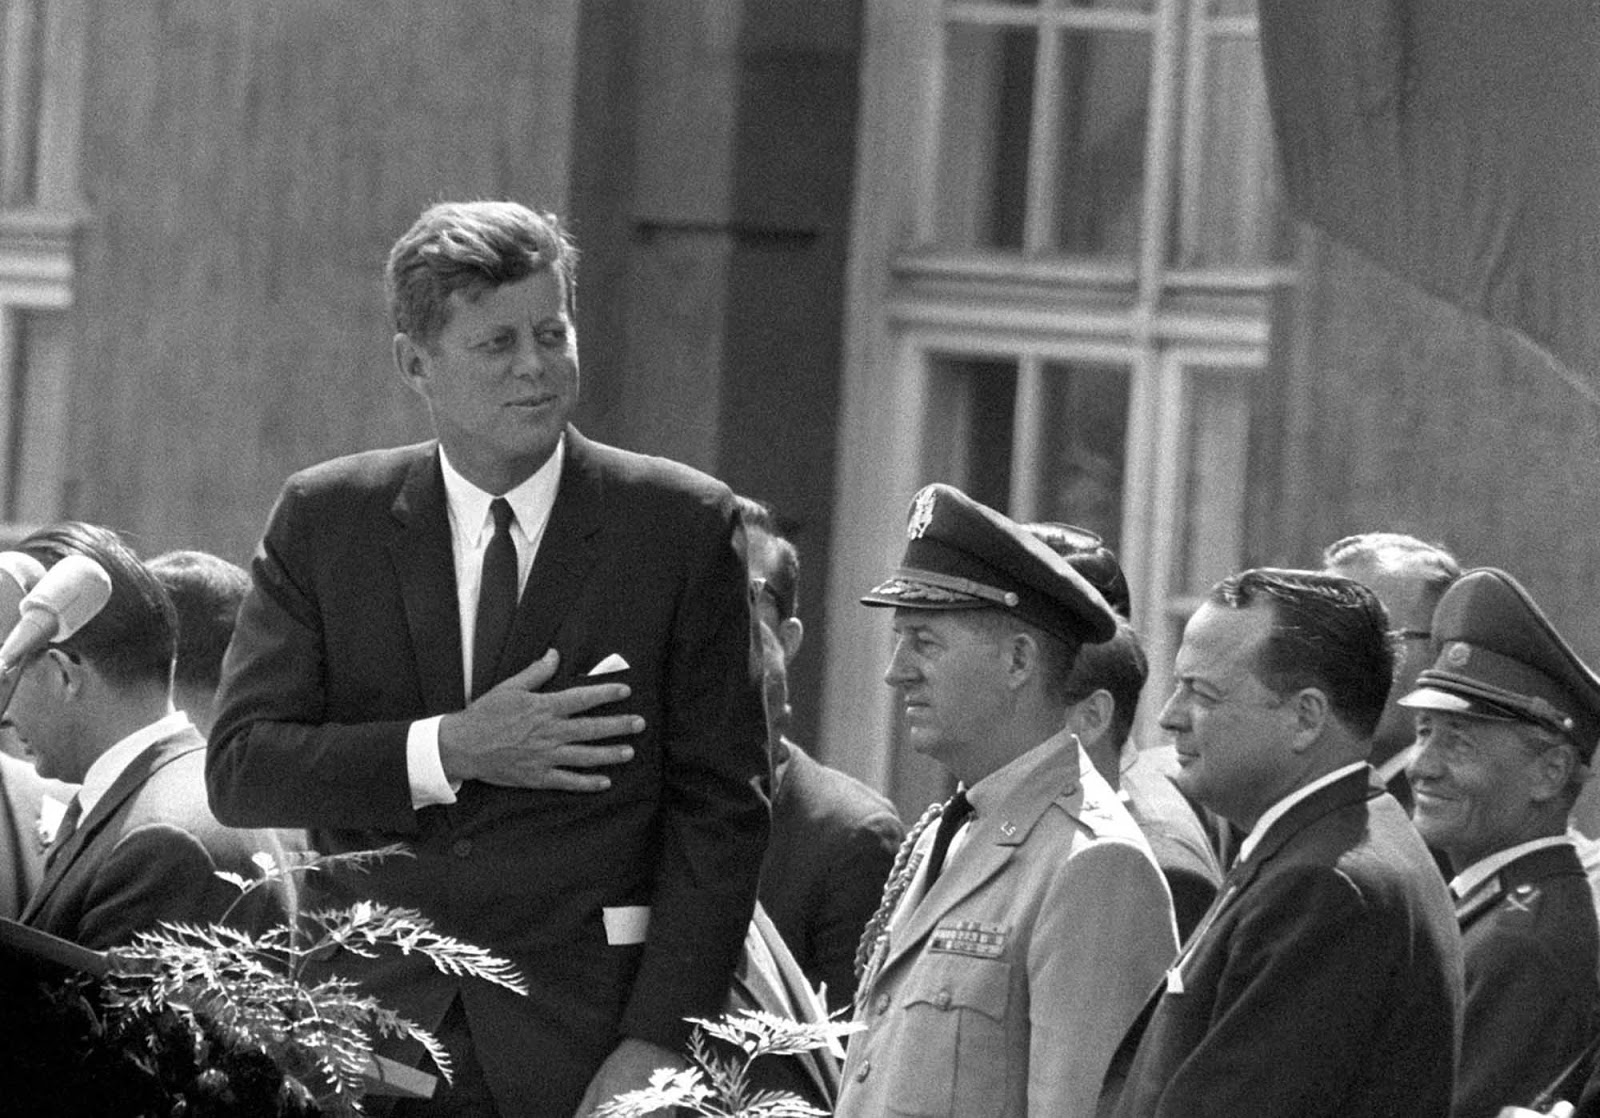 President John F Kennedy giving a speech at the Schoeneberg city hall in Berlin, where he said his famous German sentence